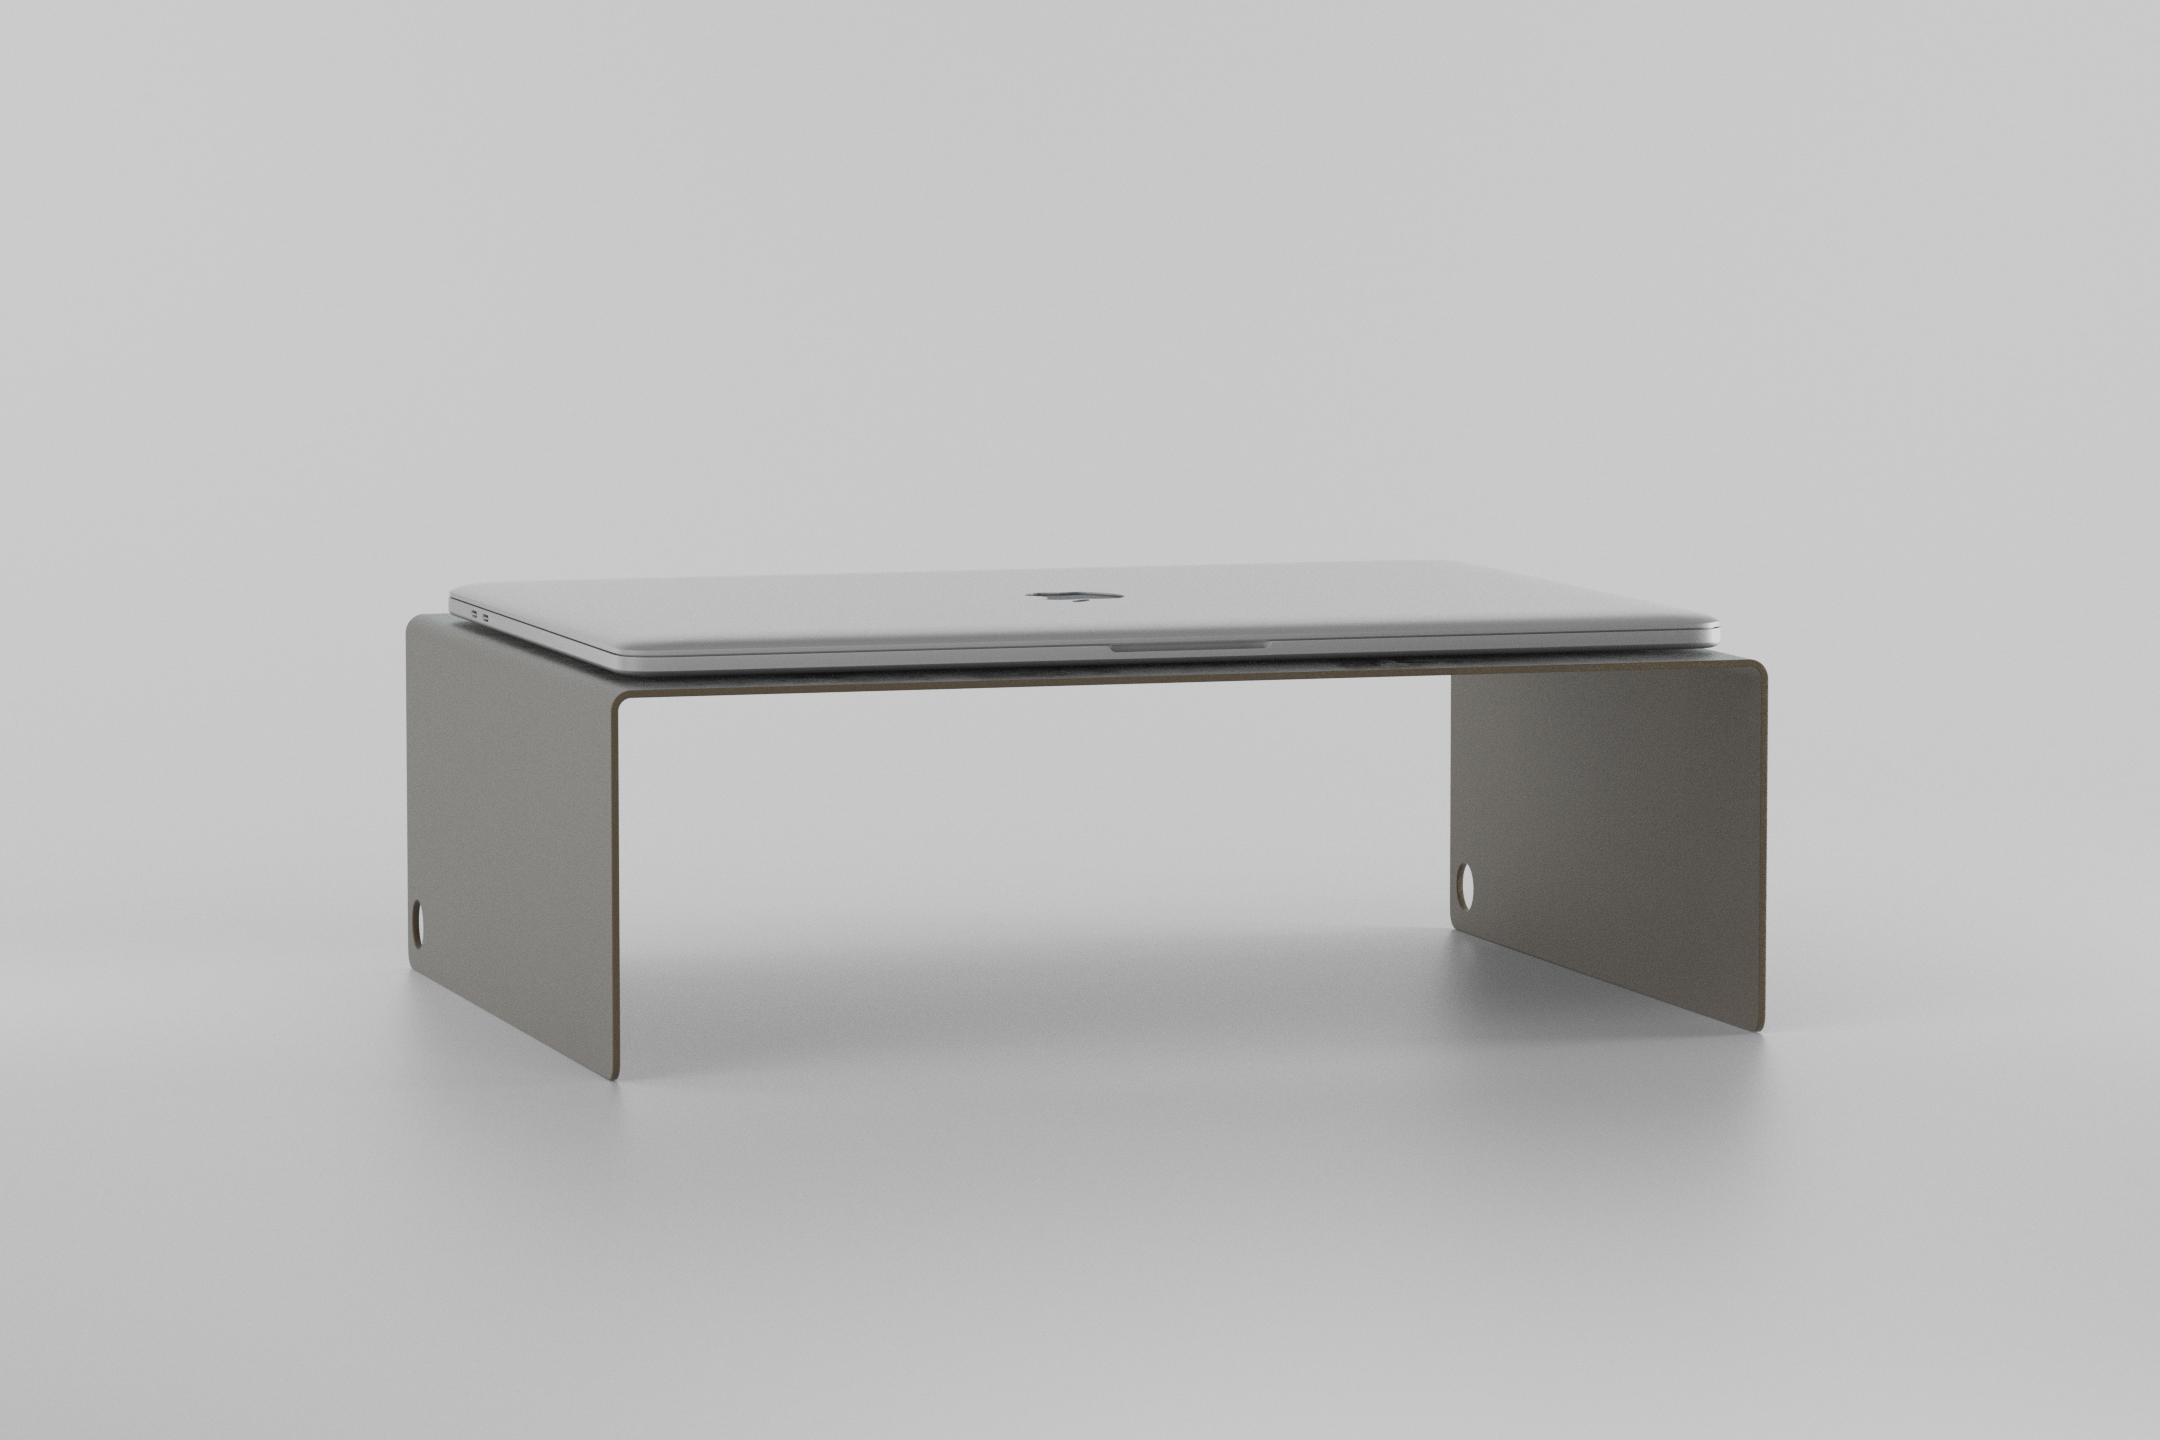 The Laptop Stand - grey beige with laptop on it